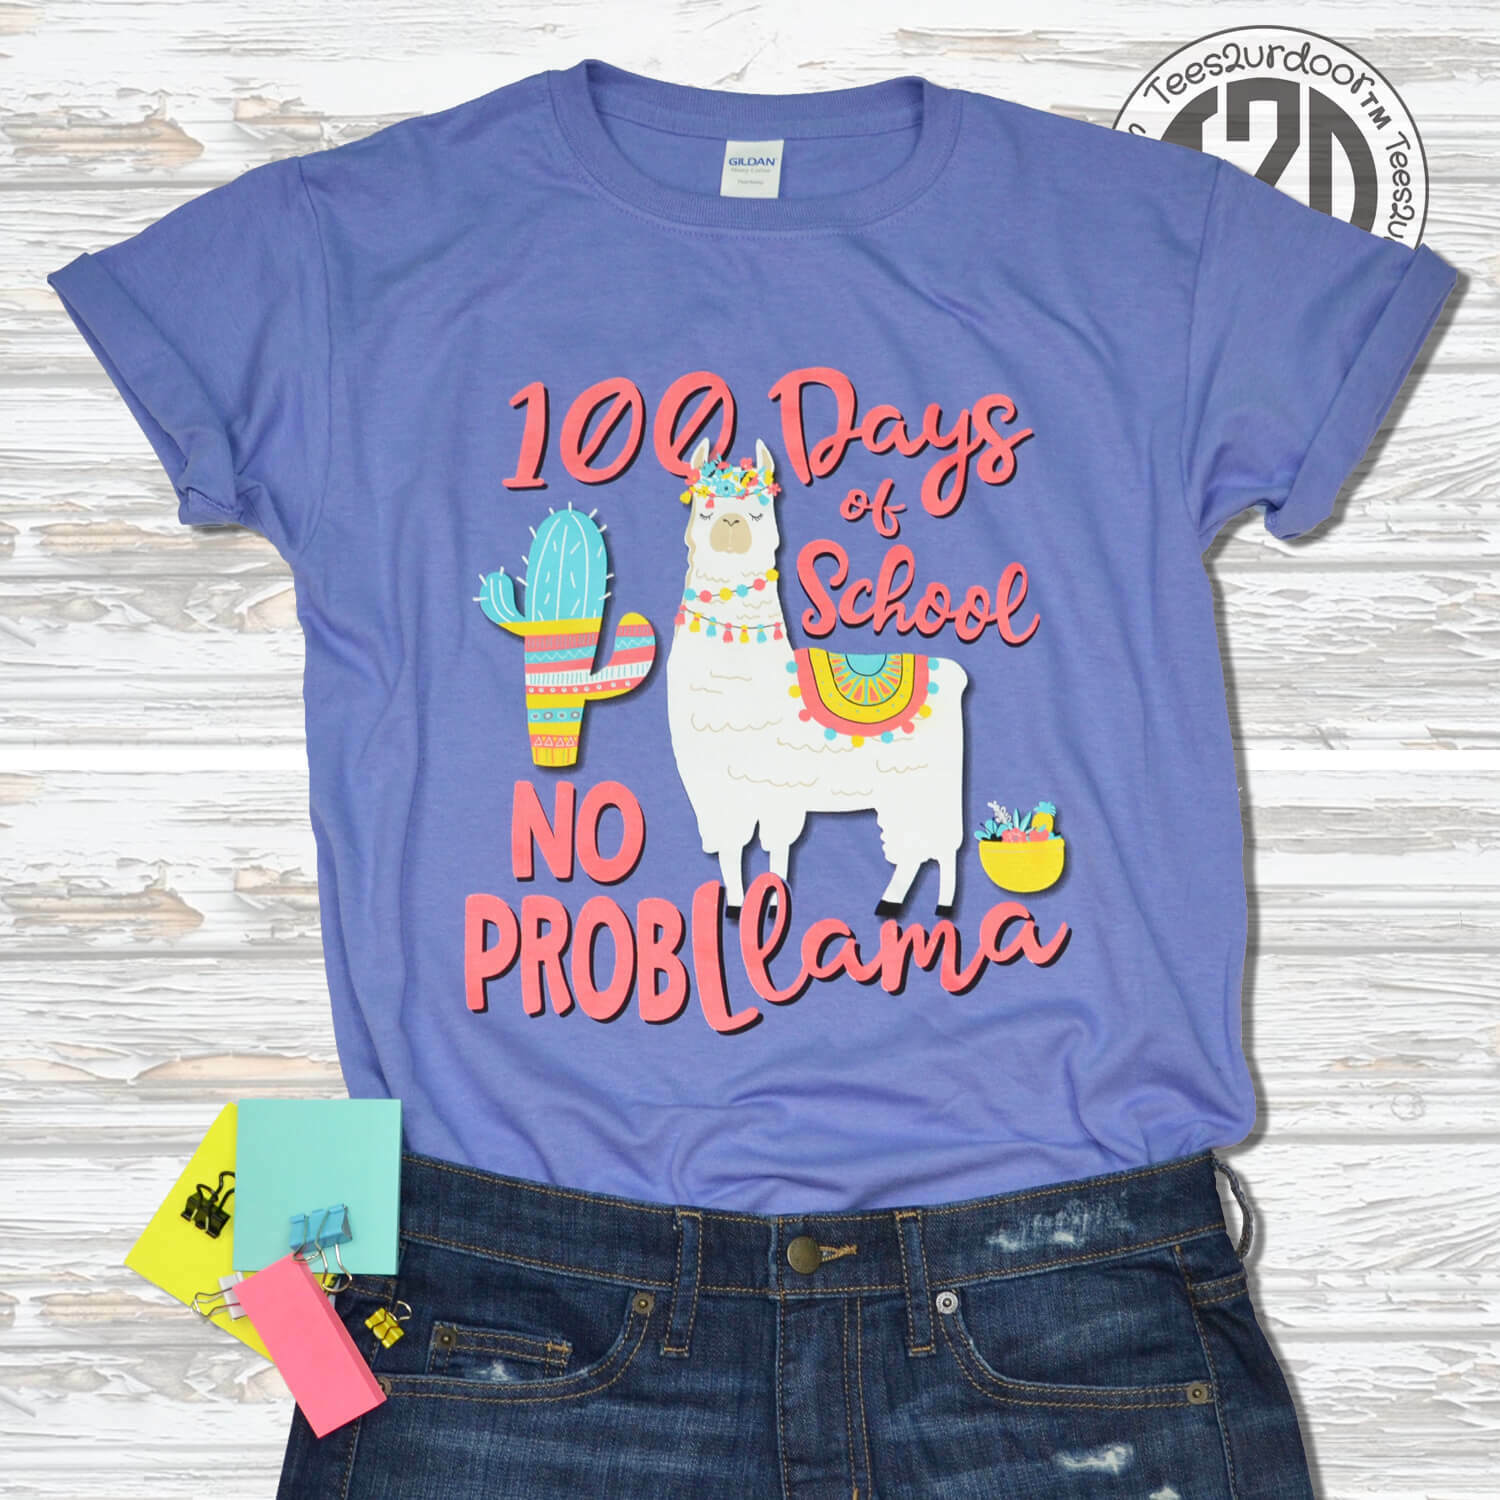 100 Days of School No Probllama T-Shirt